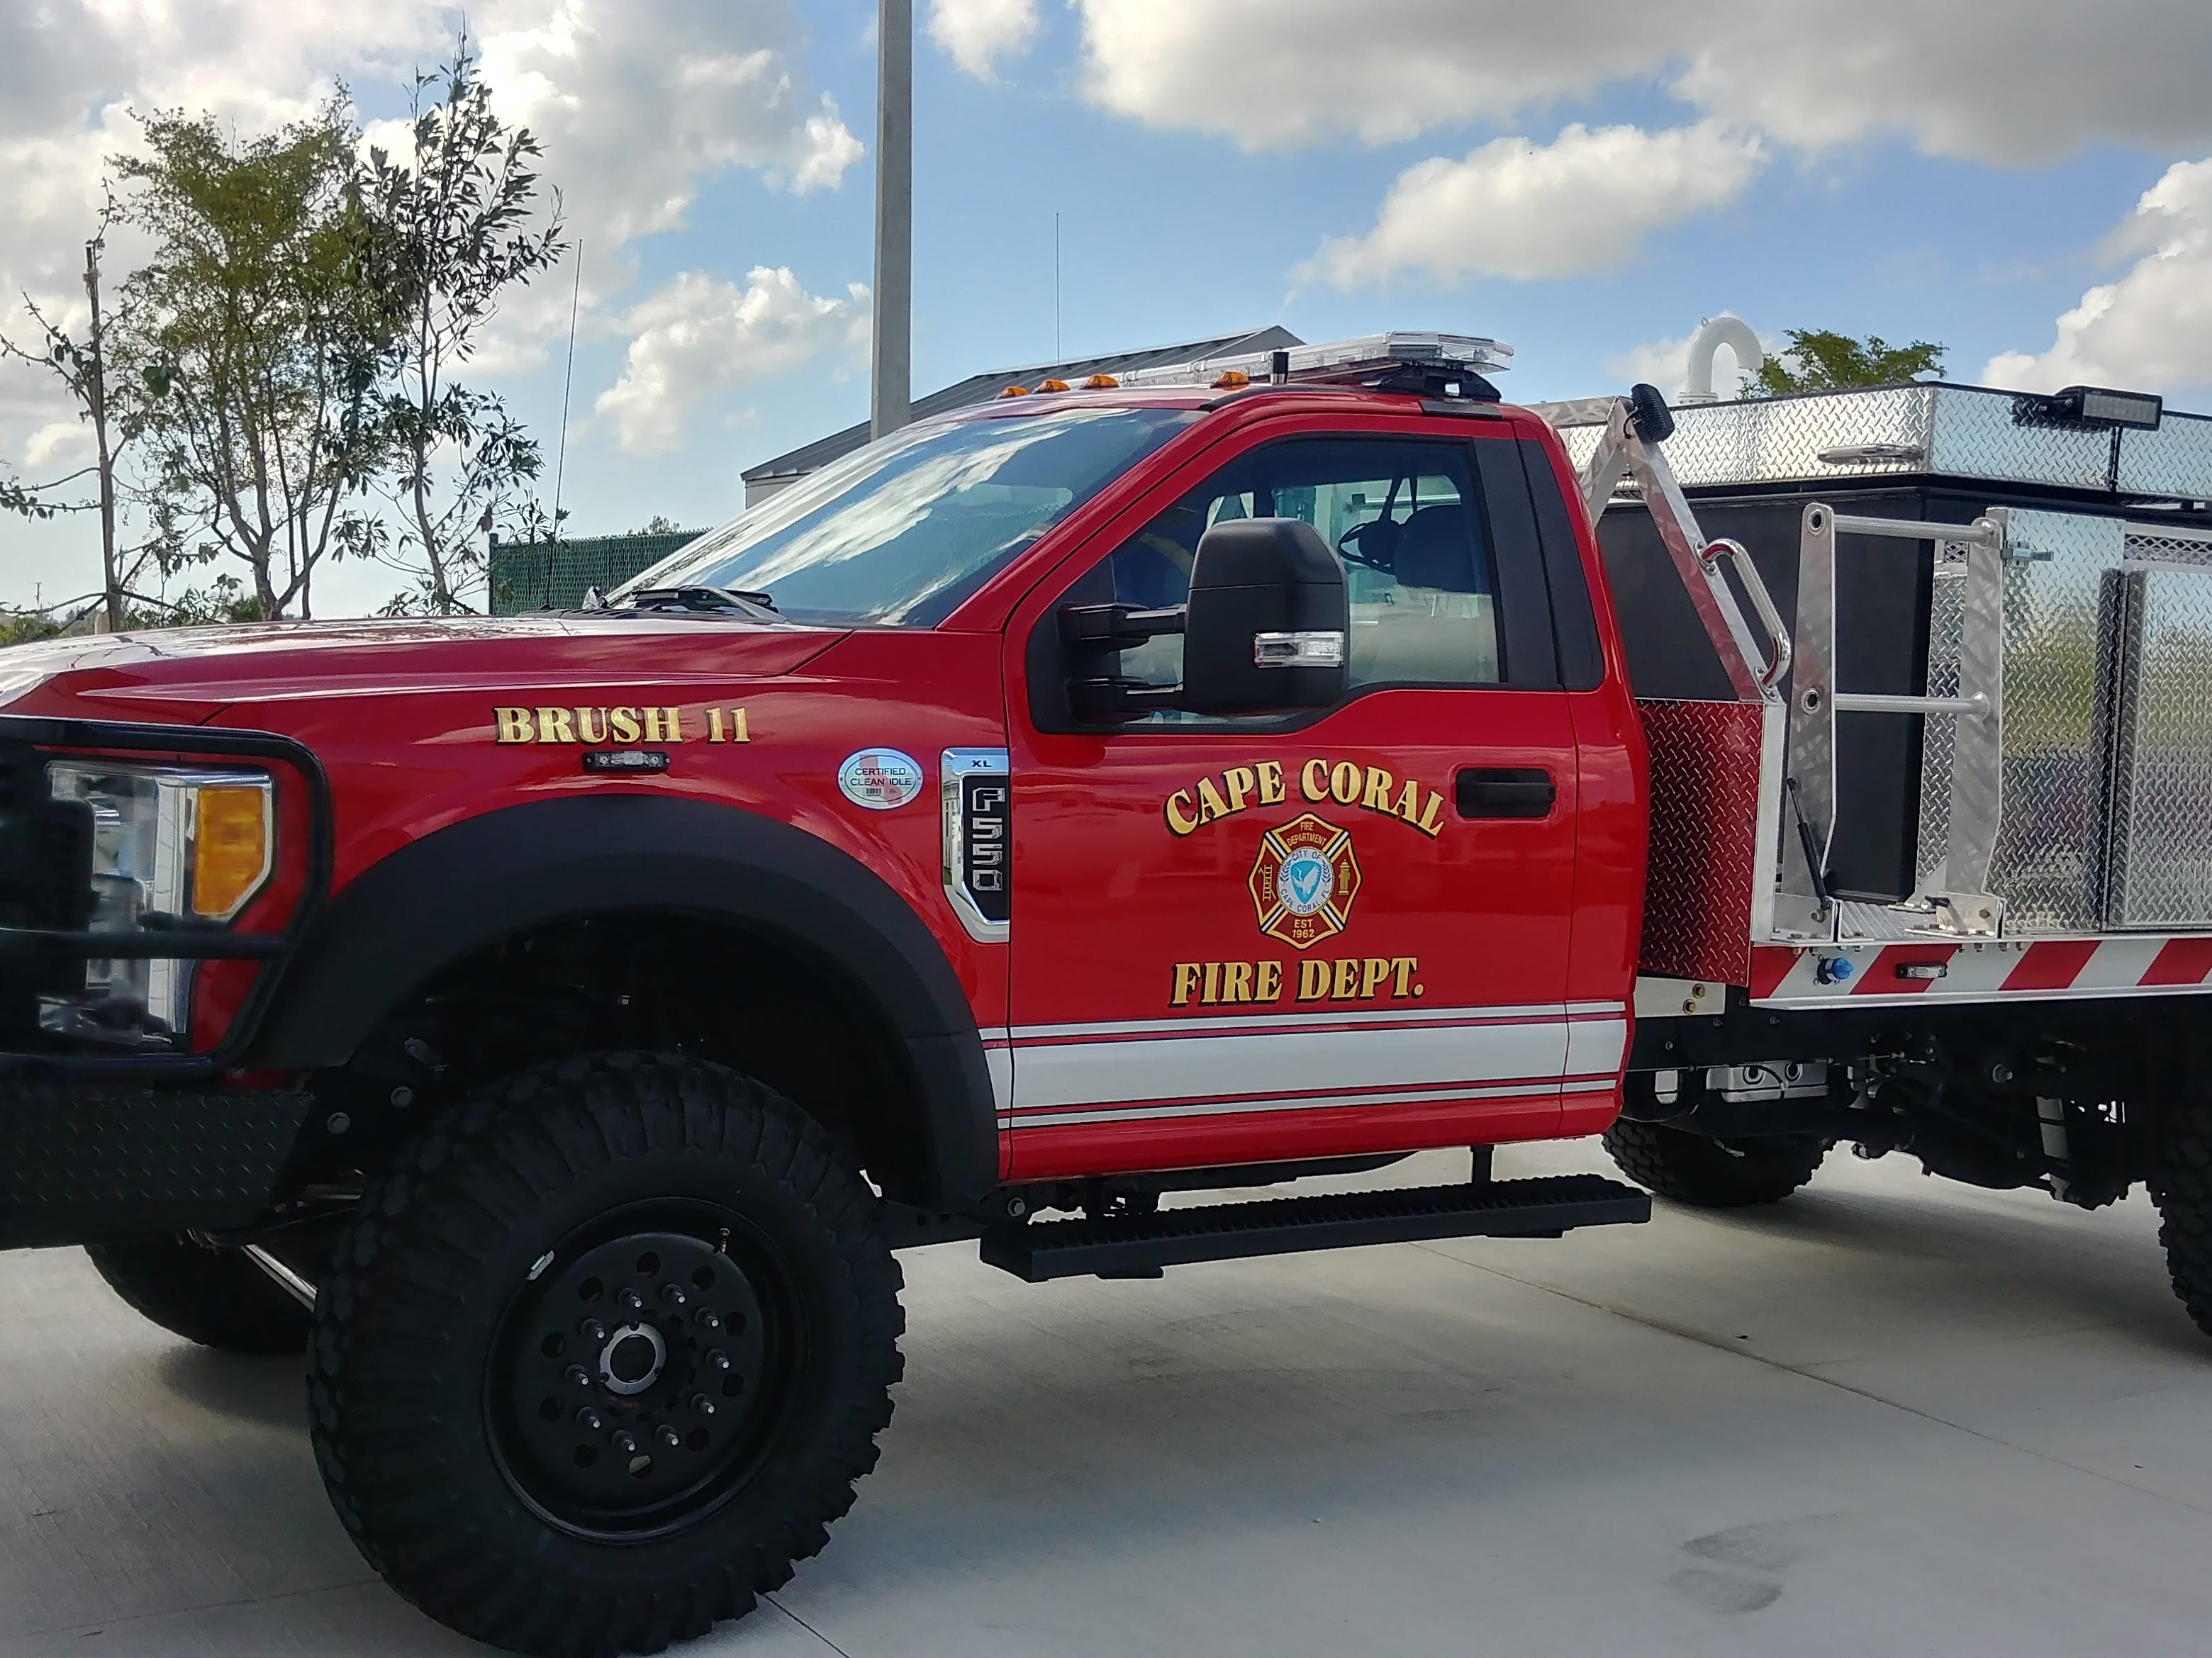 The new brush fire truck at Station 11 will serve the Northwest quadrant of Cape Coral as the station opened Wednesday.